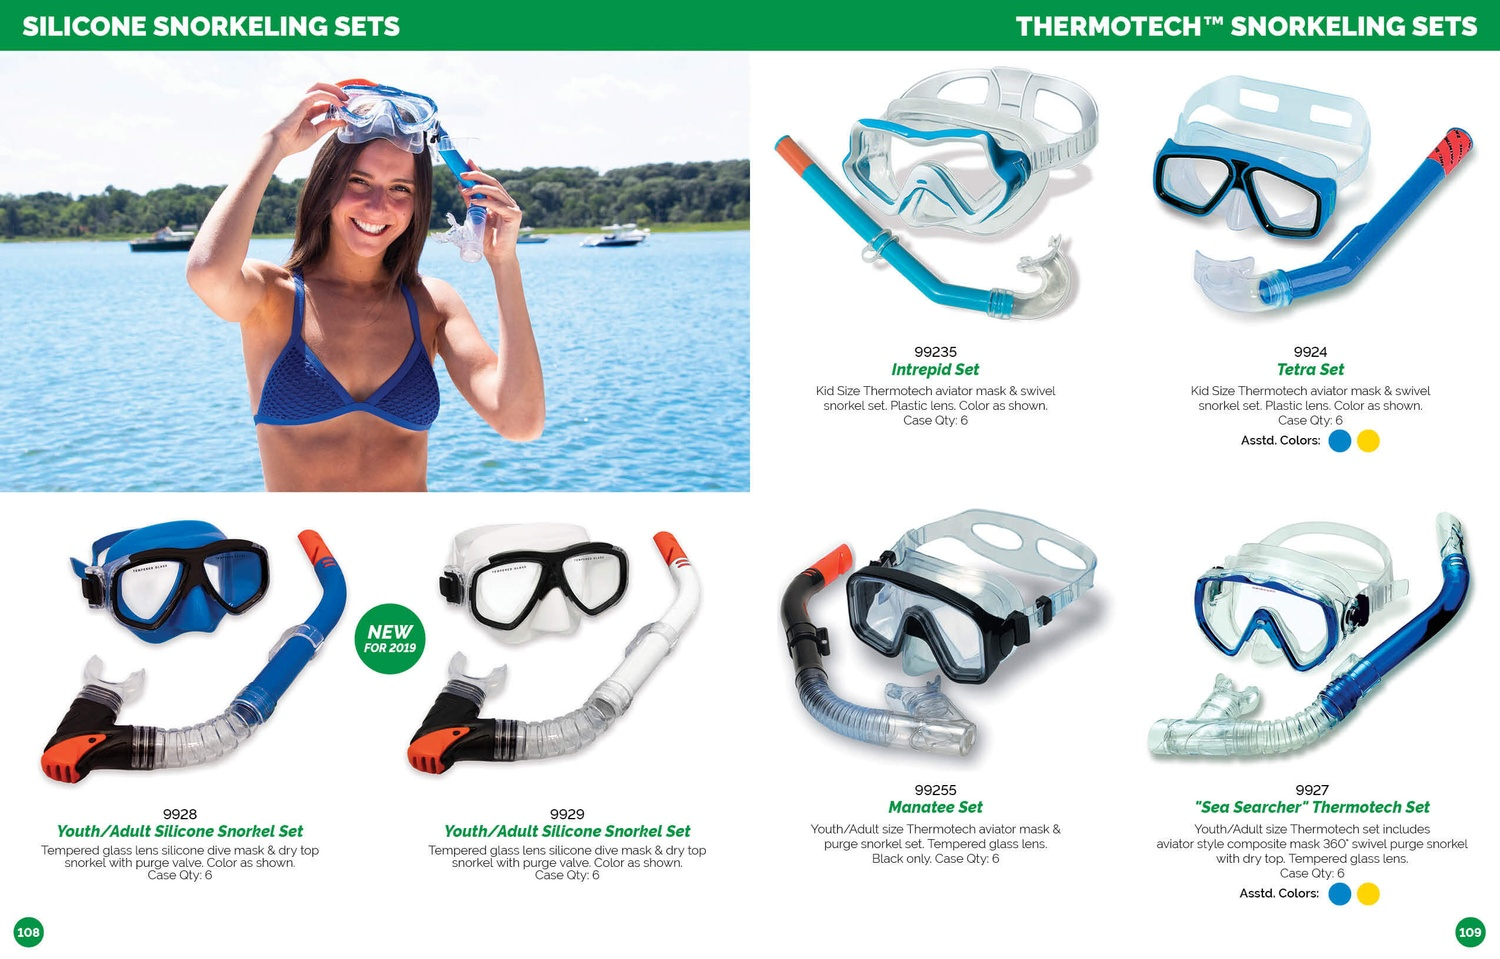 Swimline Catalog 2019 Snorkeling Set Capri Adult Combo Download Full Here